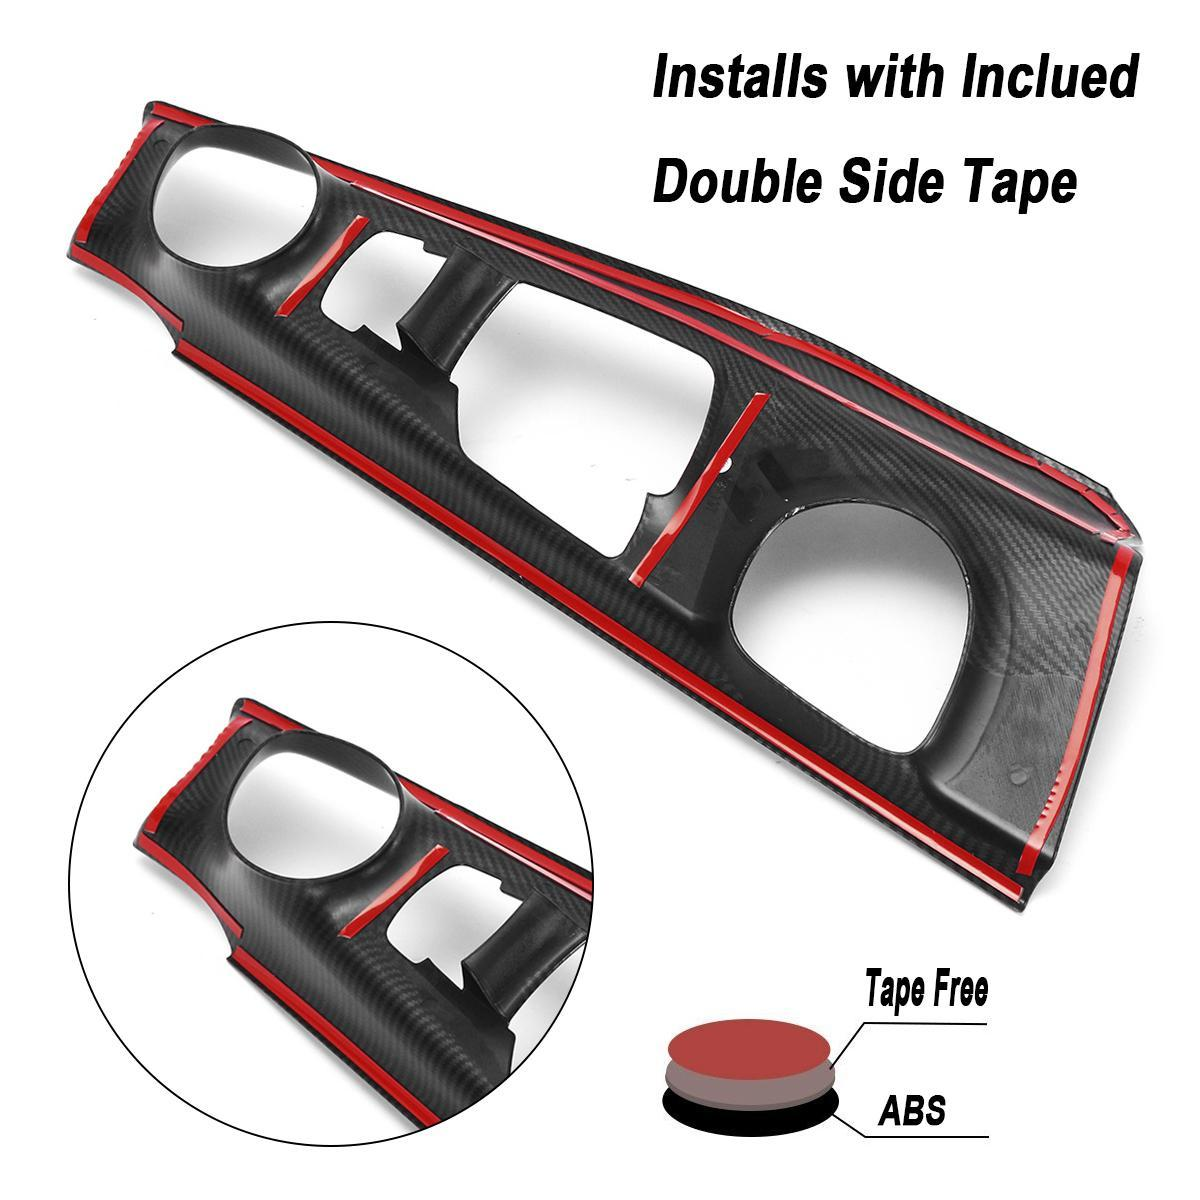 Genuine Rear Bumper Primed Towing Eye Cover Flap Fits Mercedes A21988007059999